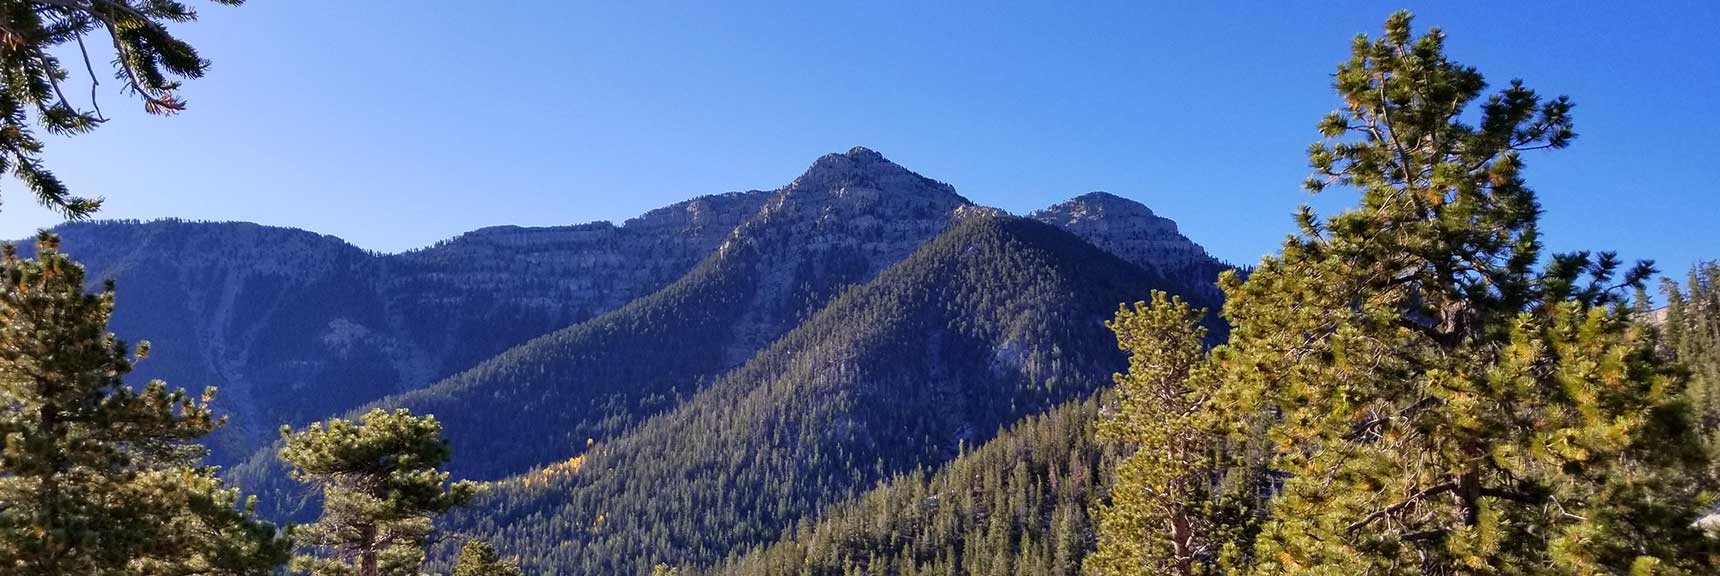 Breaking Out Into the Open, View of Lee Peak on the Bristlecone Pine Trail in Lee Canyon, Mt. Charleston Wilderness, Nevada